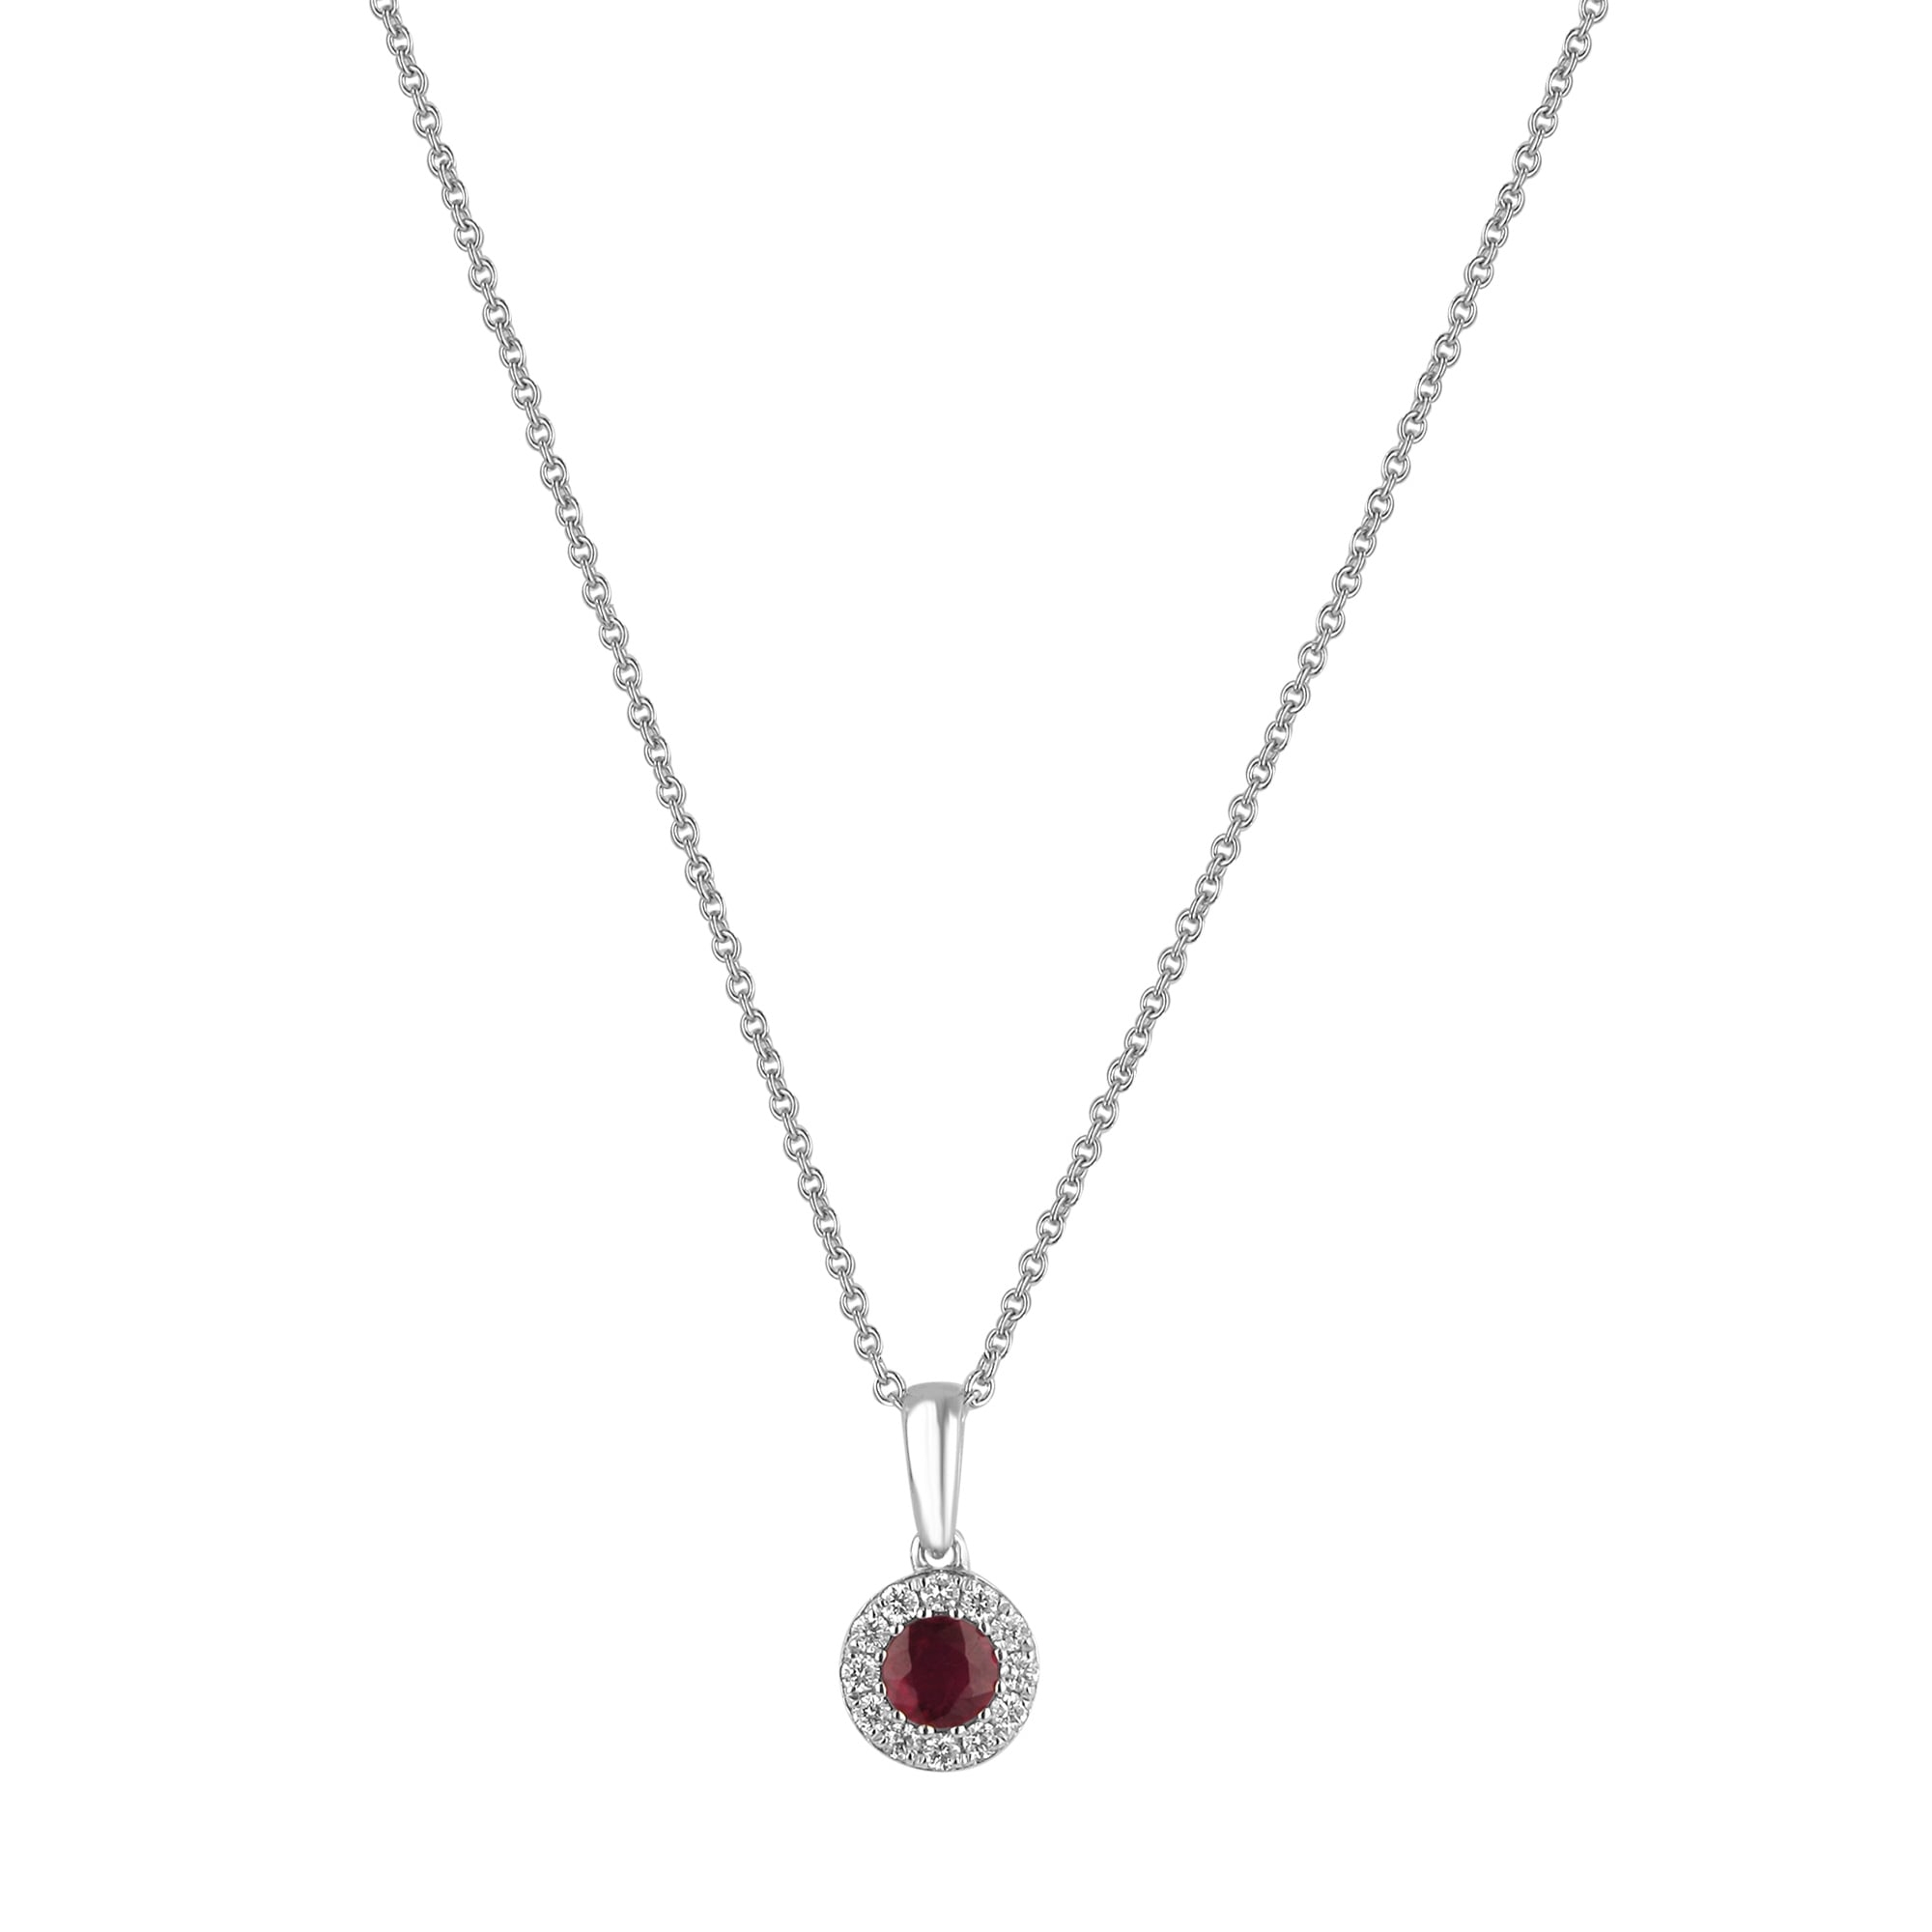 Round Ruby And Diamond Cluster Necklace With Regard To Recent Ruby And Diamond Cluster Necklaces (Gallery 25 of 25)